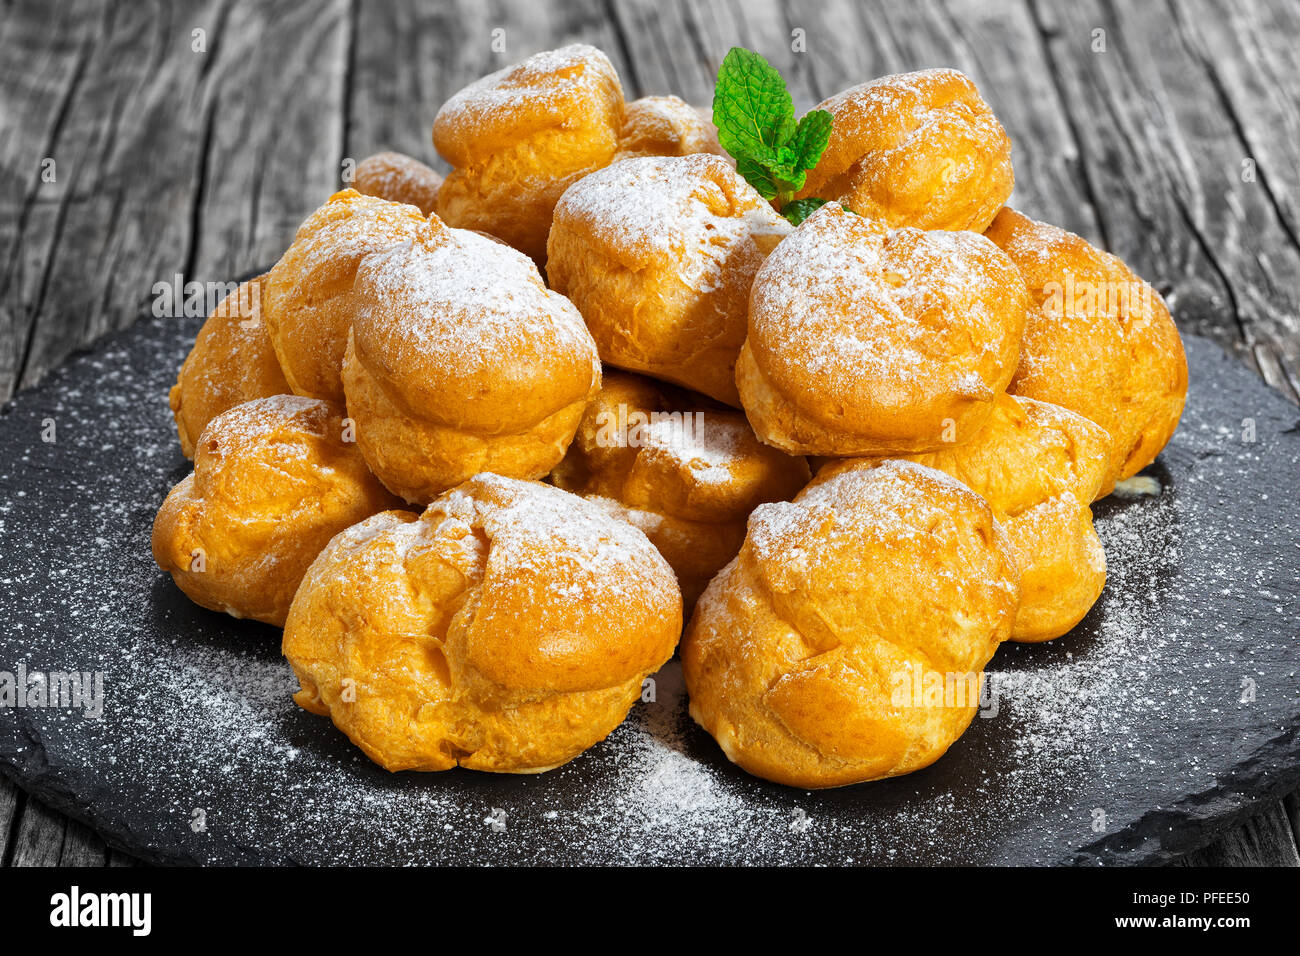 Delicious profiteroles filled with cream on slate plate,  dusting of powdered sugar and decorated with mint, on old dark wooden table, close-up - Stock Image